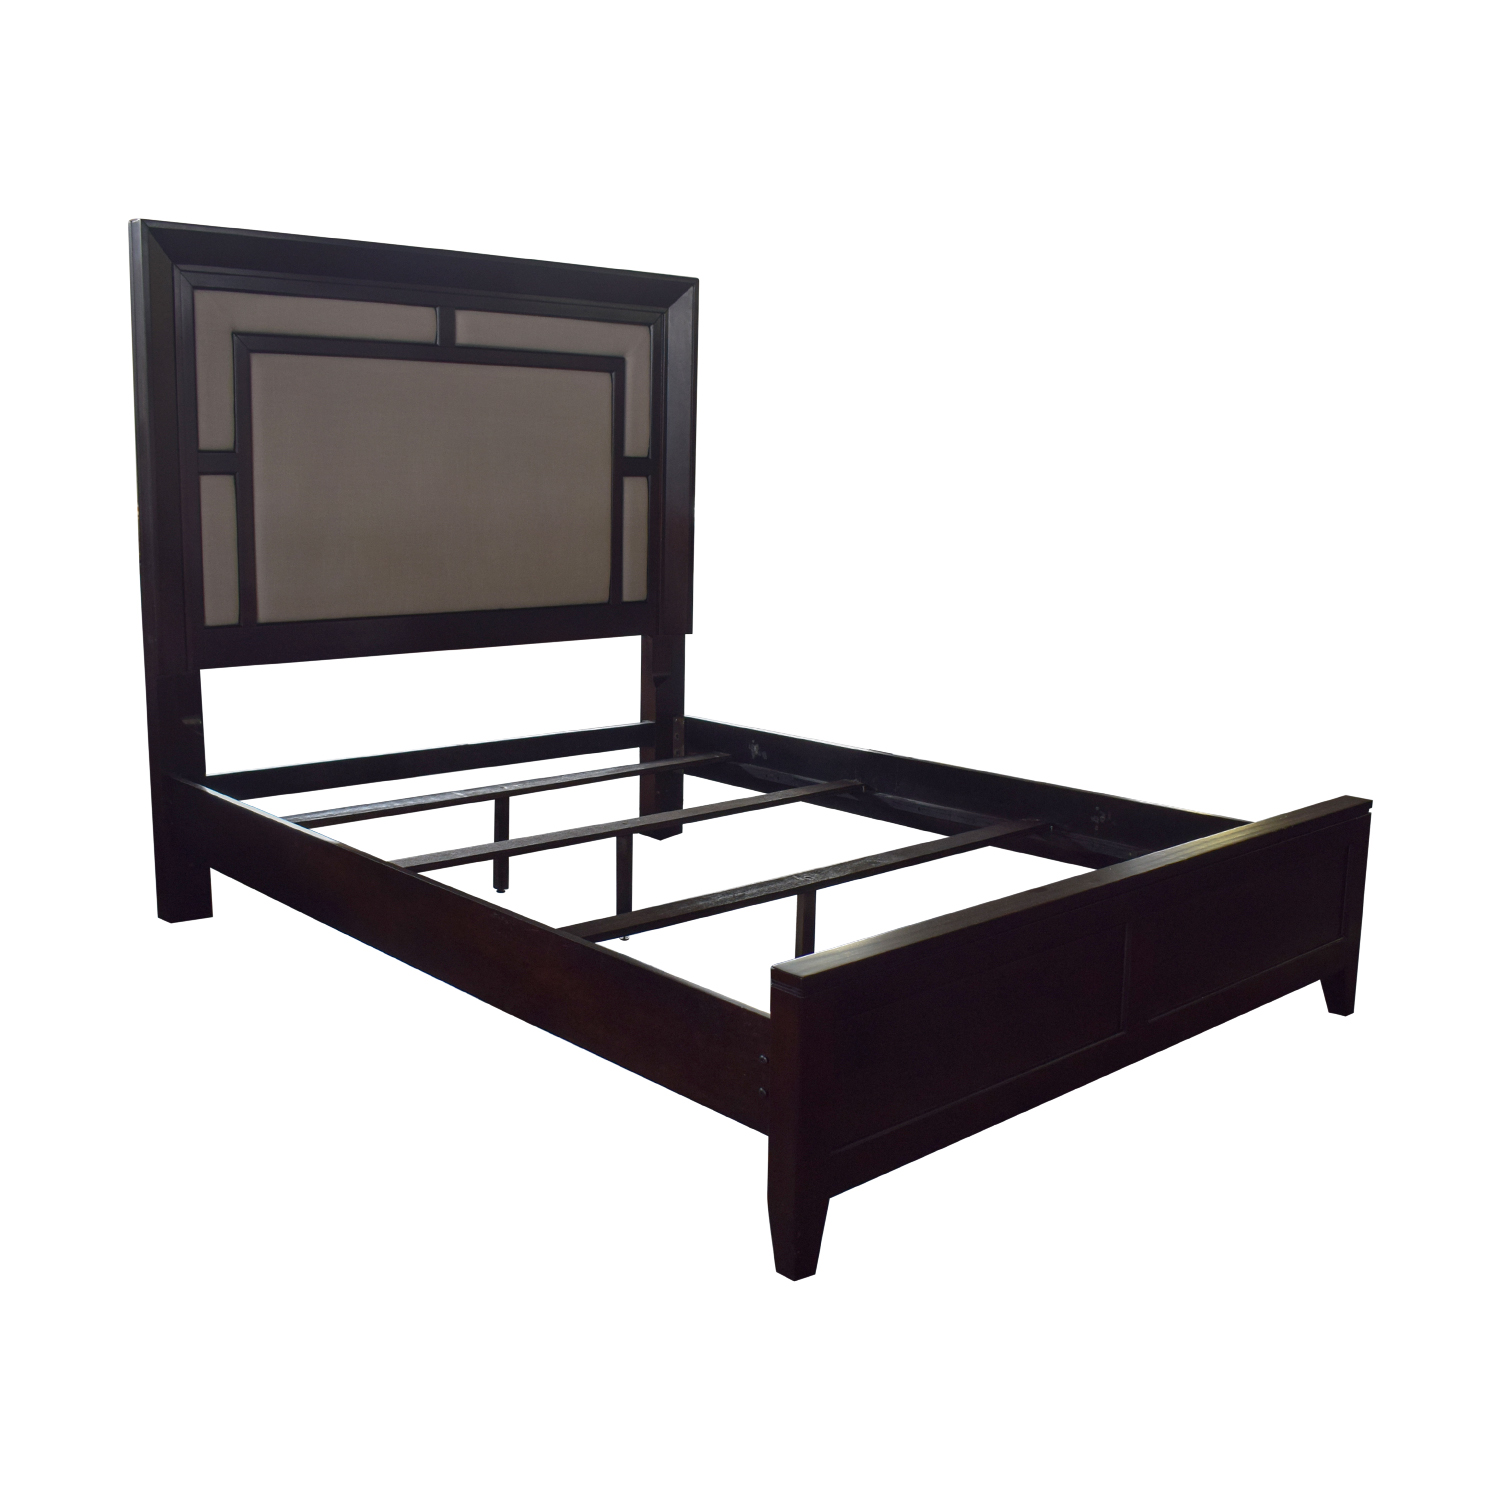 Raymour & Flanigan Raymour & Flanigan Cadence Queen Platform Bed nyc